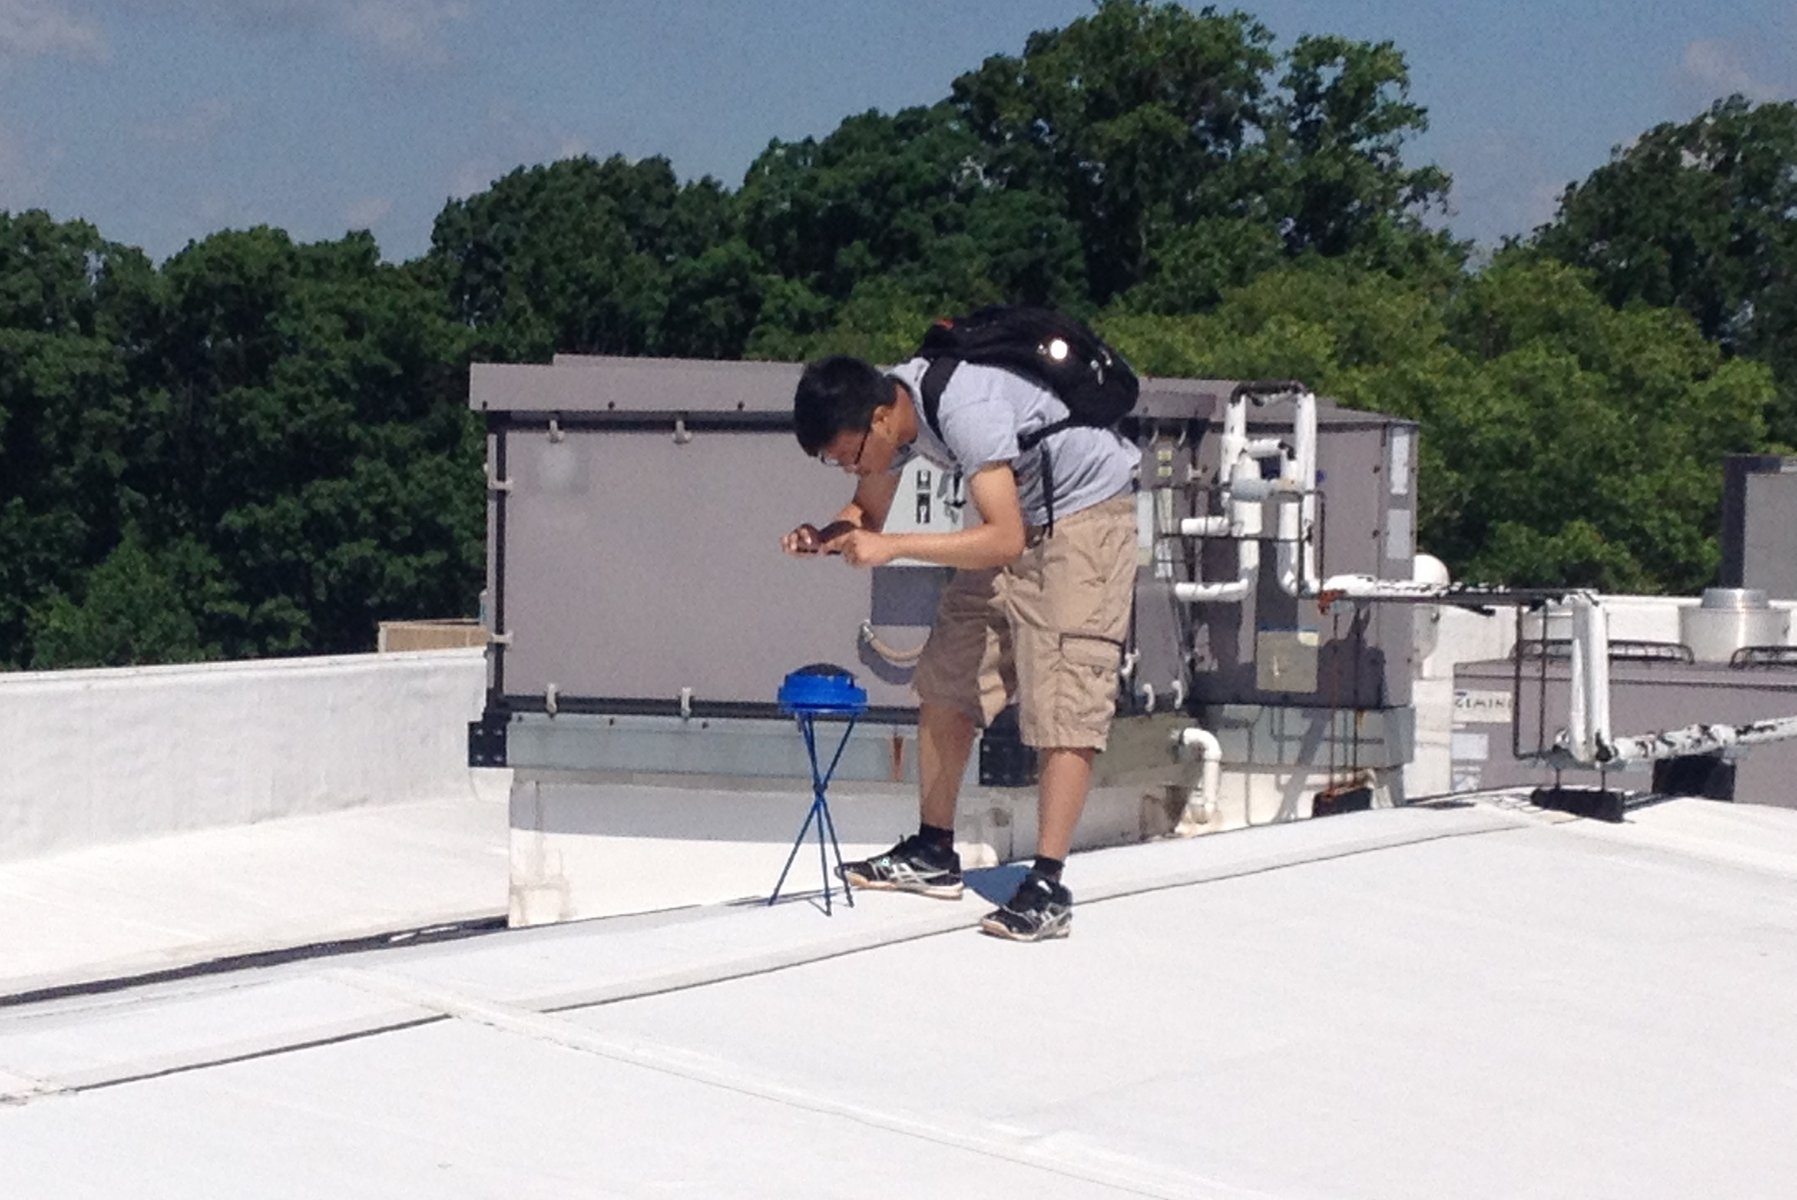 Robin Htun '18 stands on a white rooftop, bent over taking a photograph of a small blue device, a solar pathfinder. Green treetops and a blue sky are visible in the background.